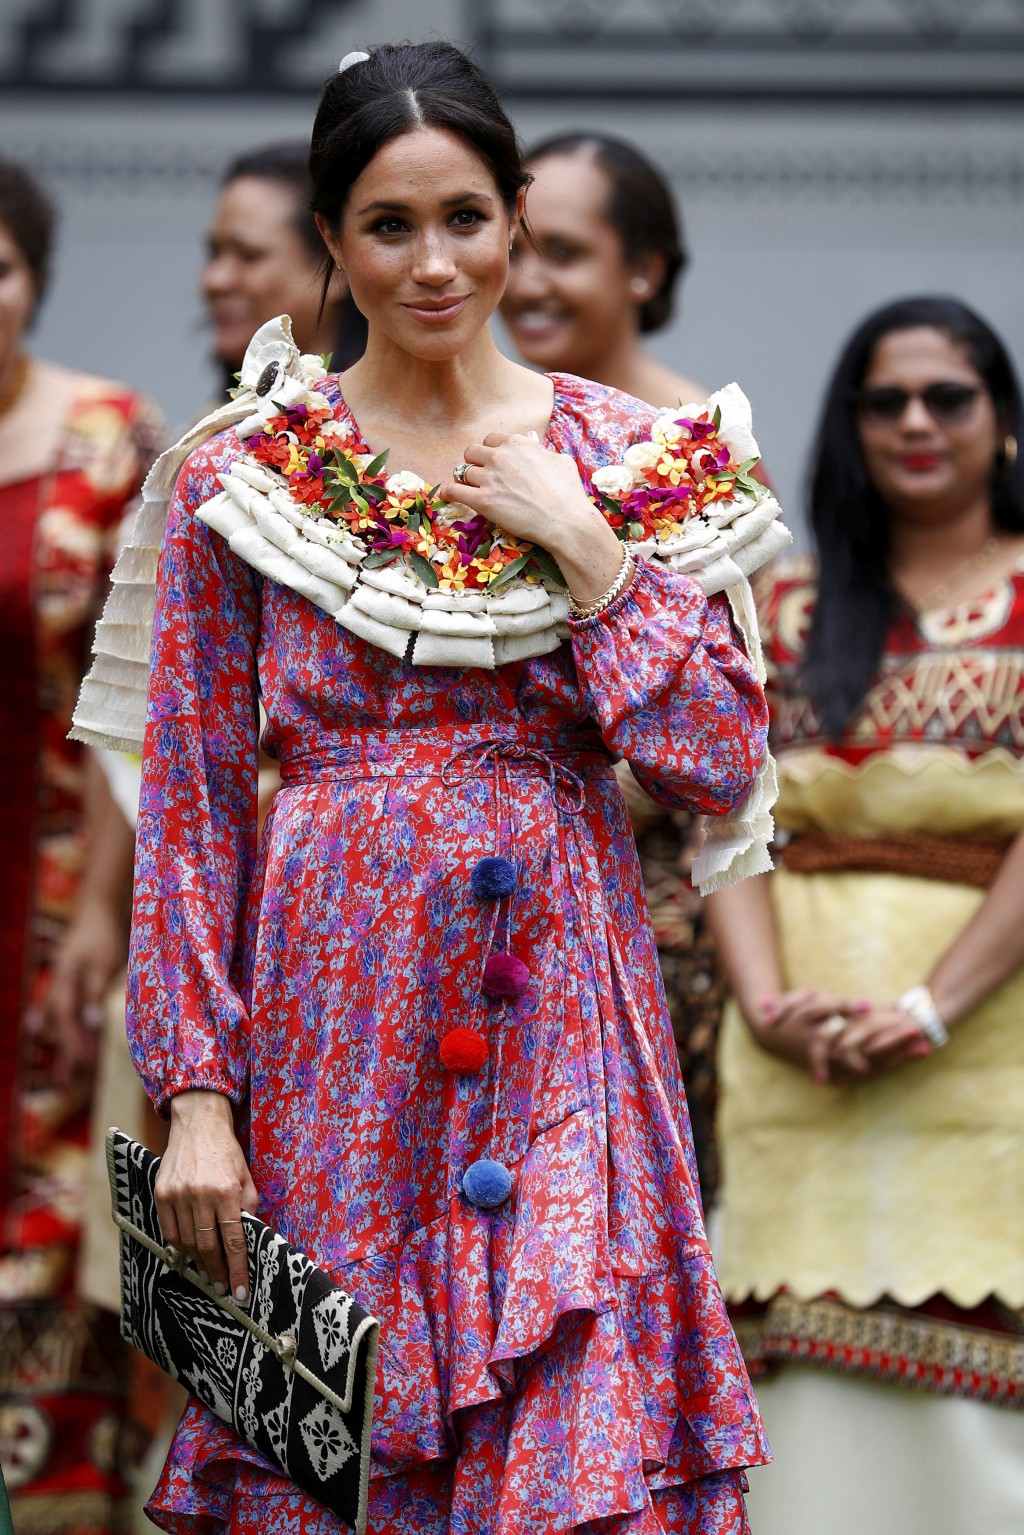 Meghan, Duchess of Sussex visits the University of the South Pacific in Suva, Fiji, Wednesday, Oct. 24, 2018. Prince Harry and his wife Meghan are on